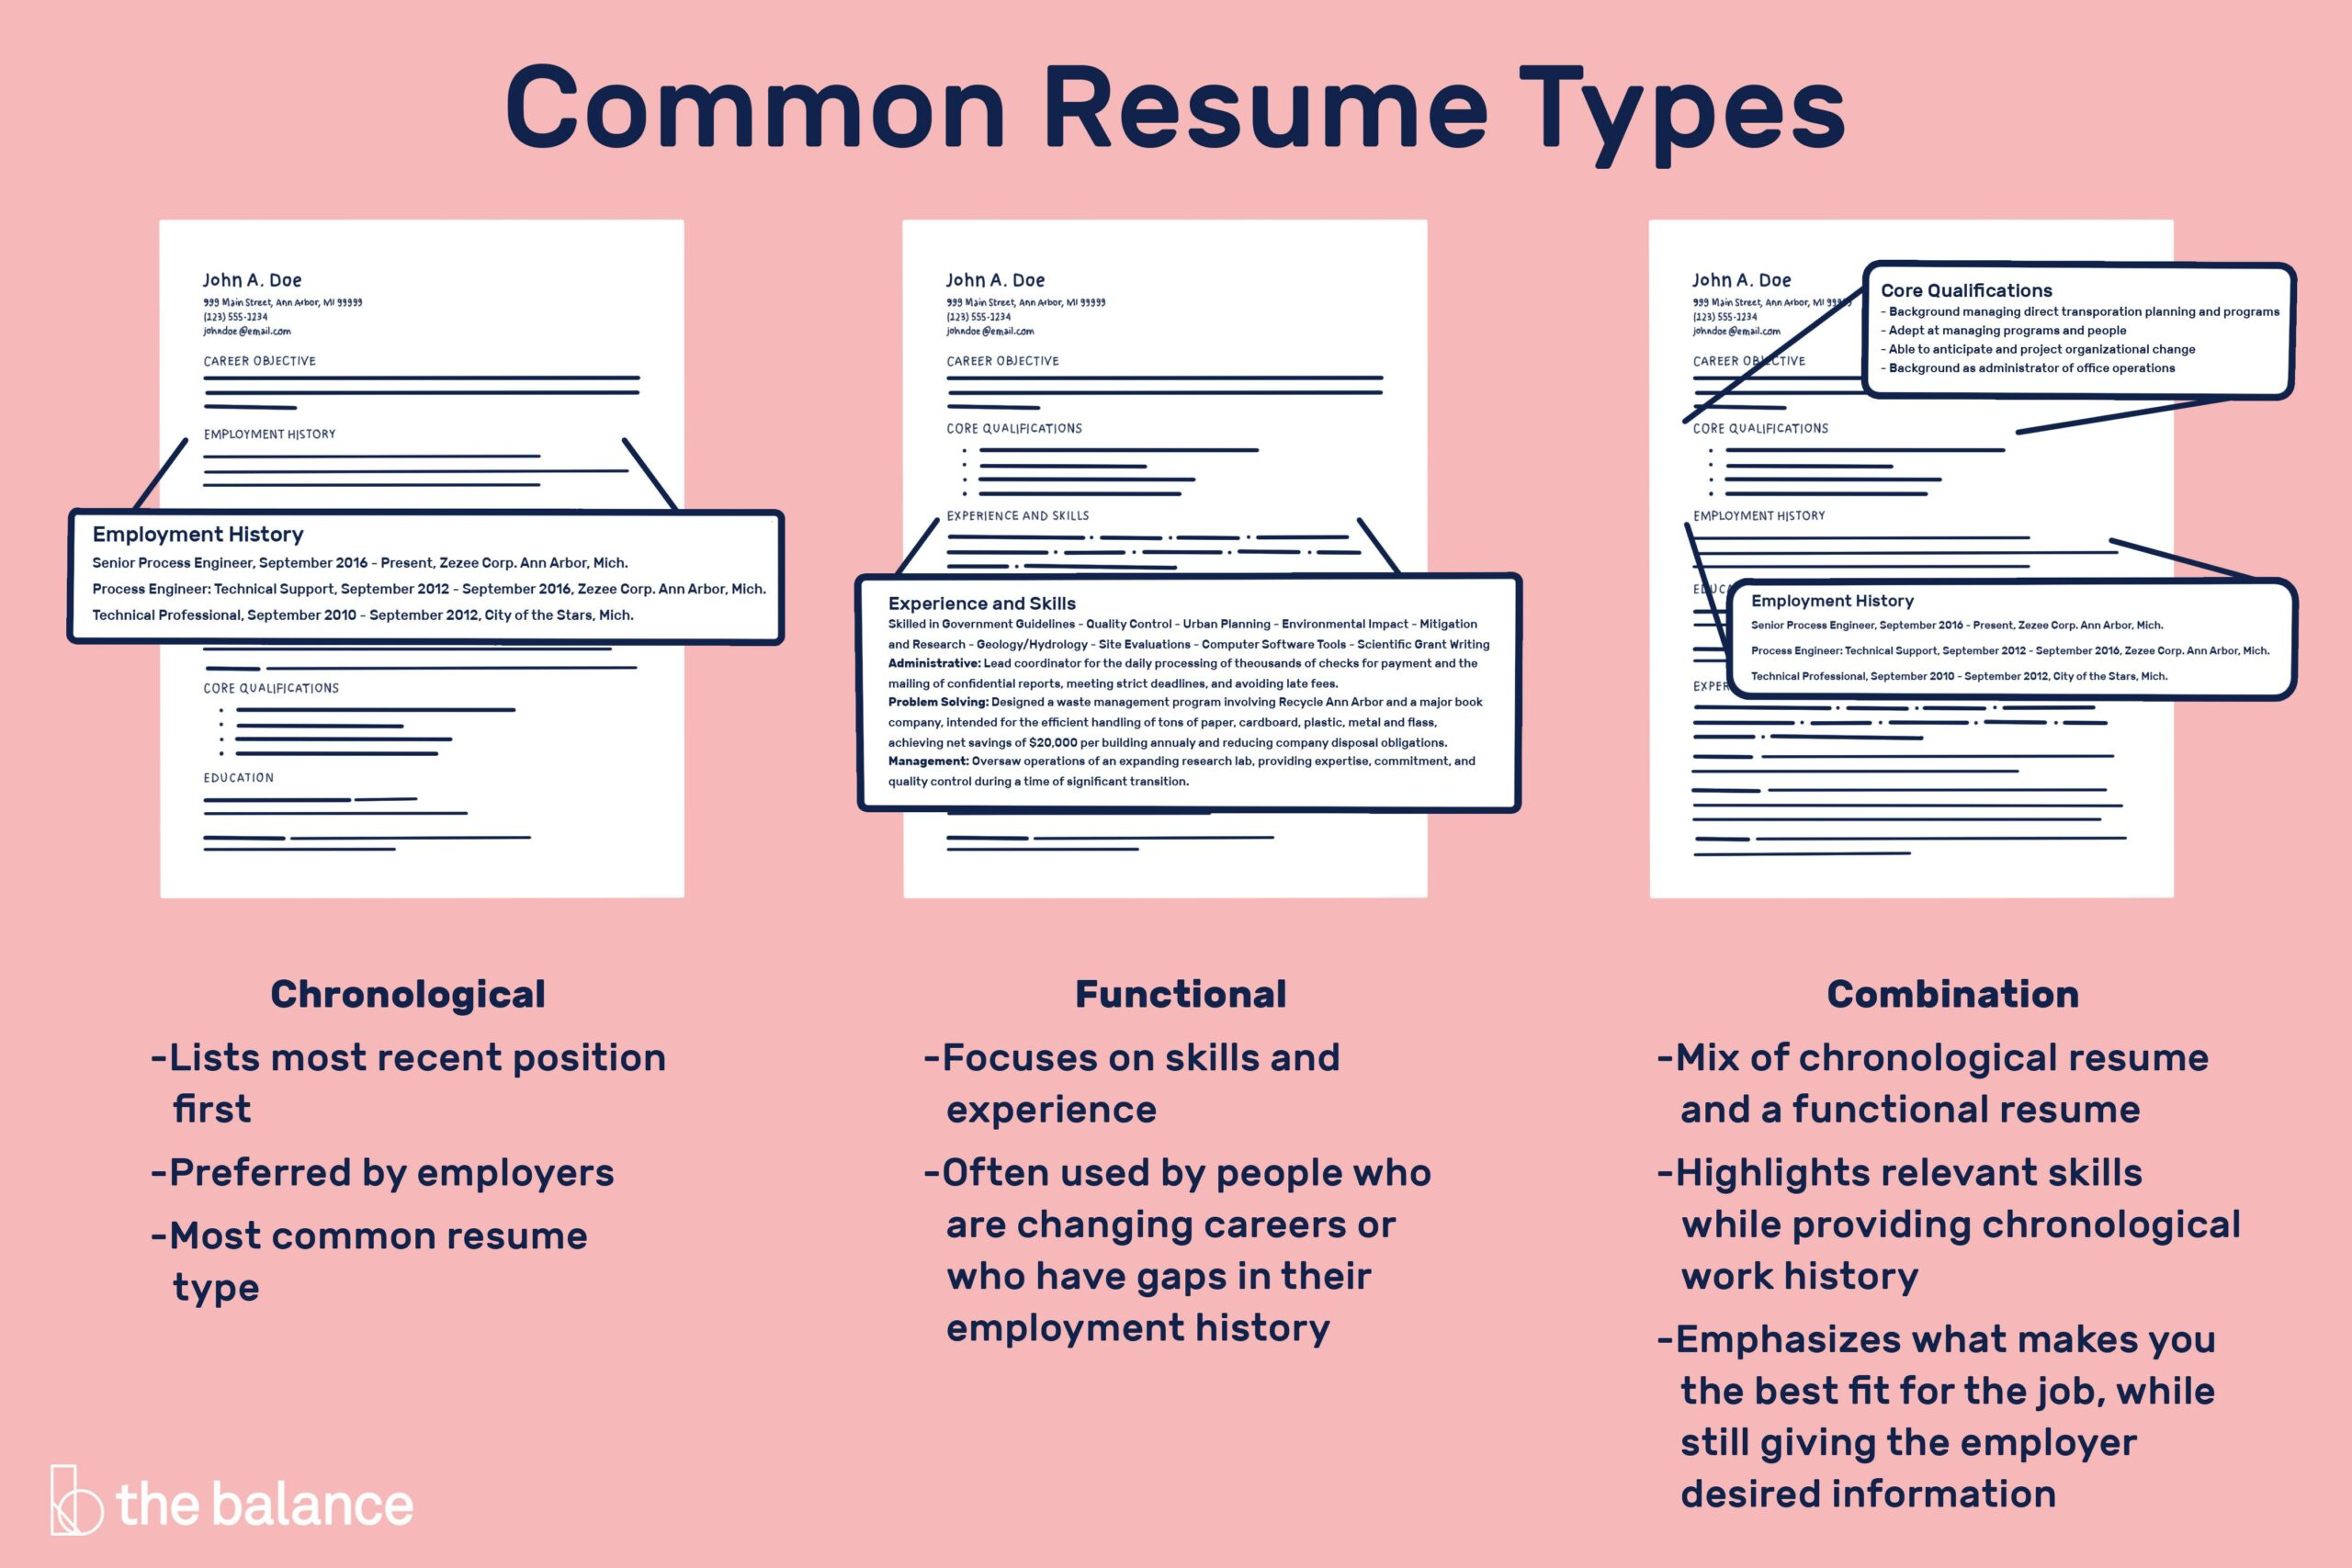 different resume types of resumes chronological functional combination 2063235v4 criminal Resume Different Types Of Resumes